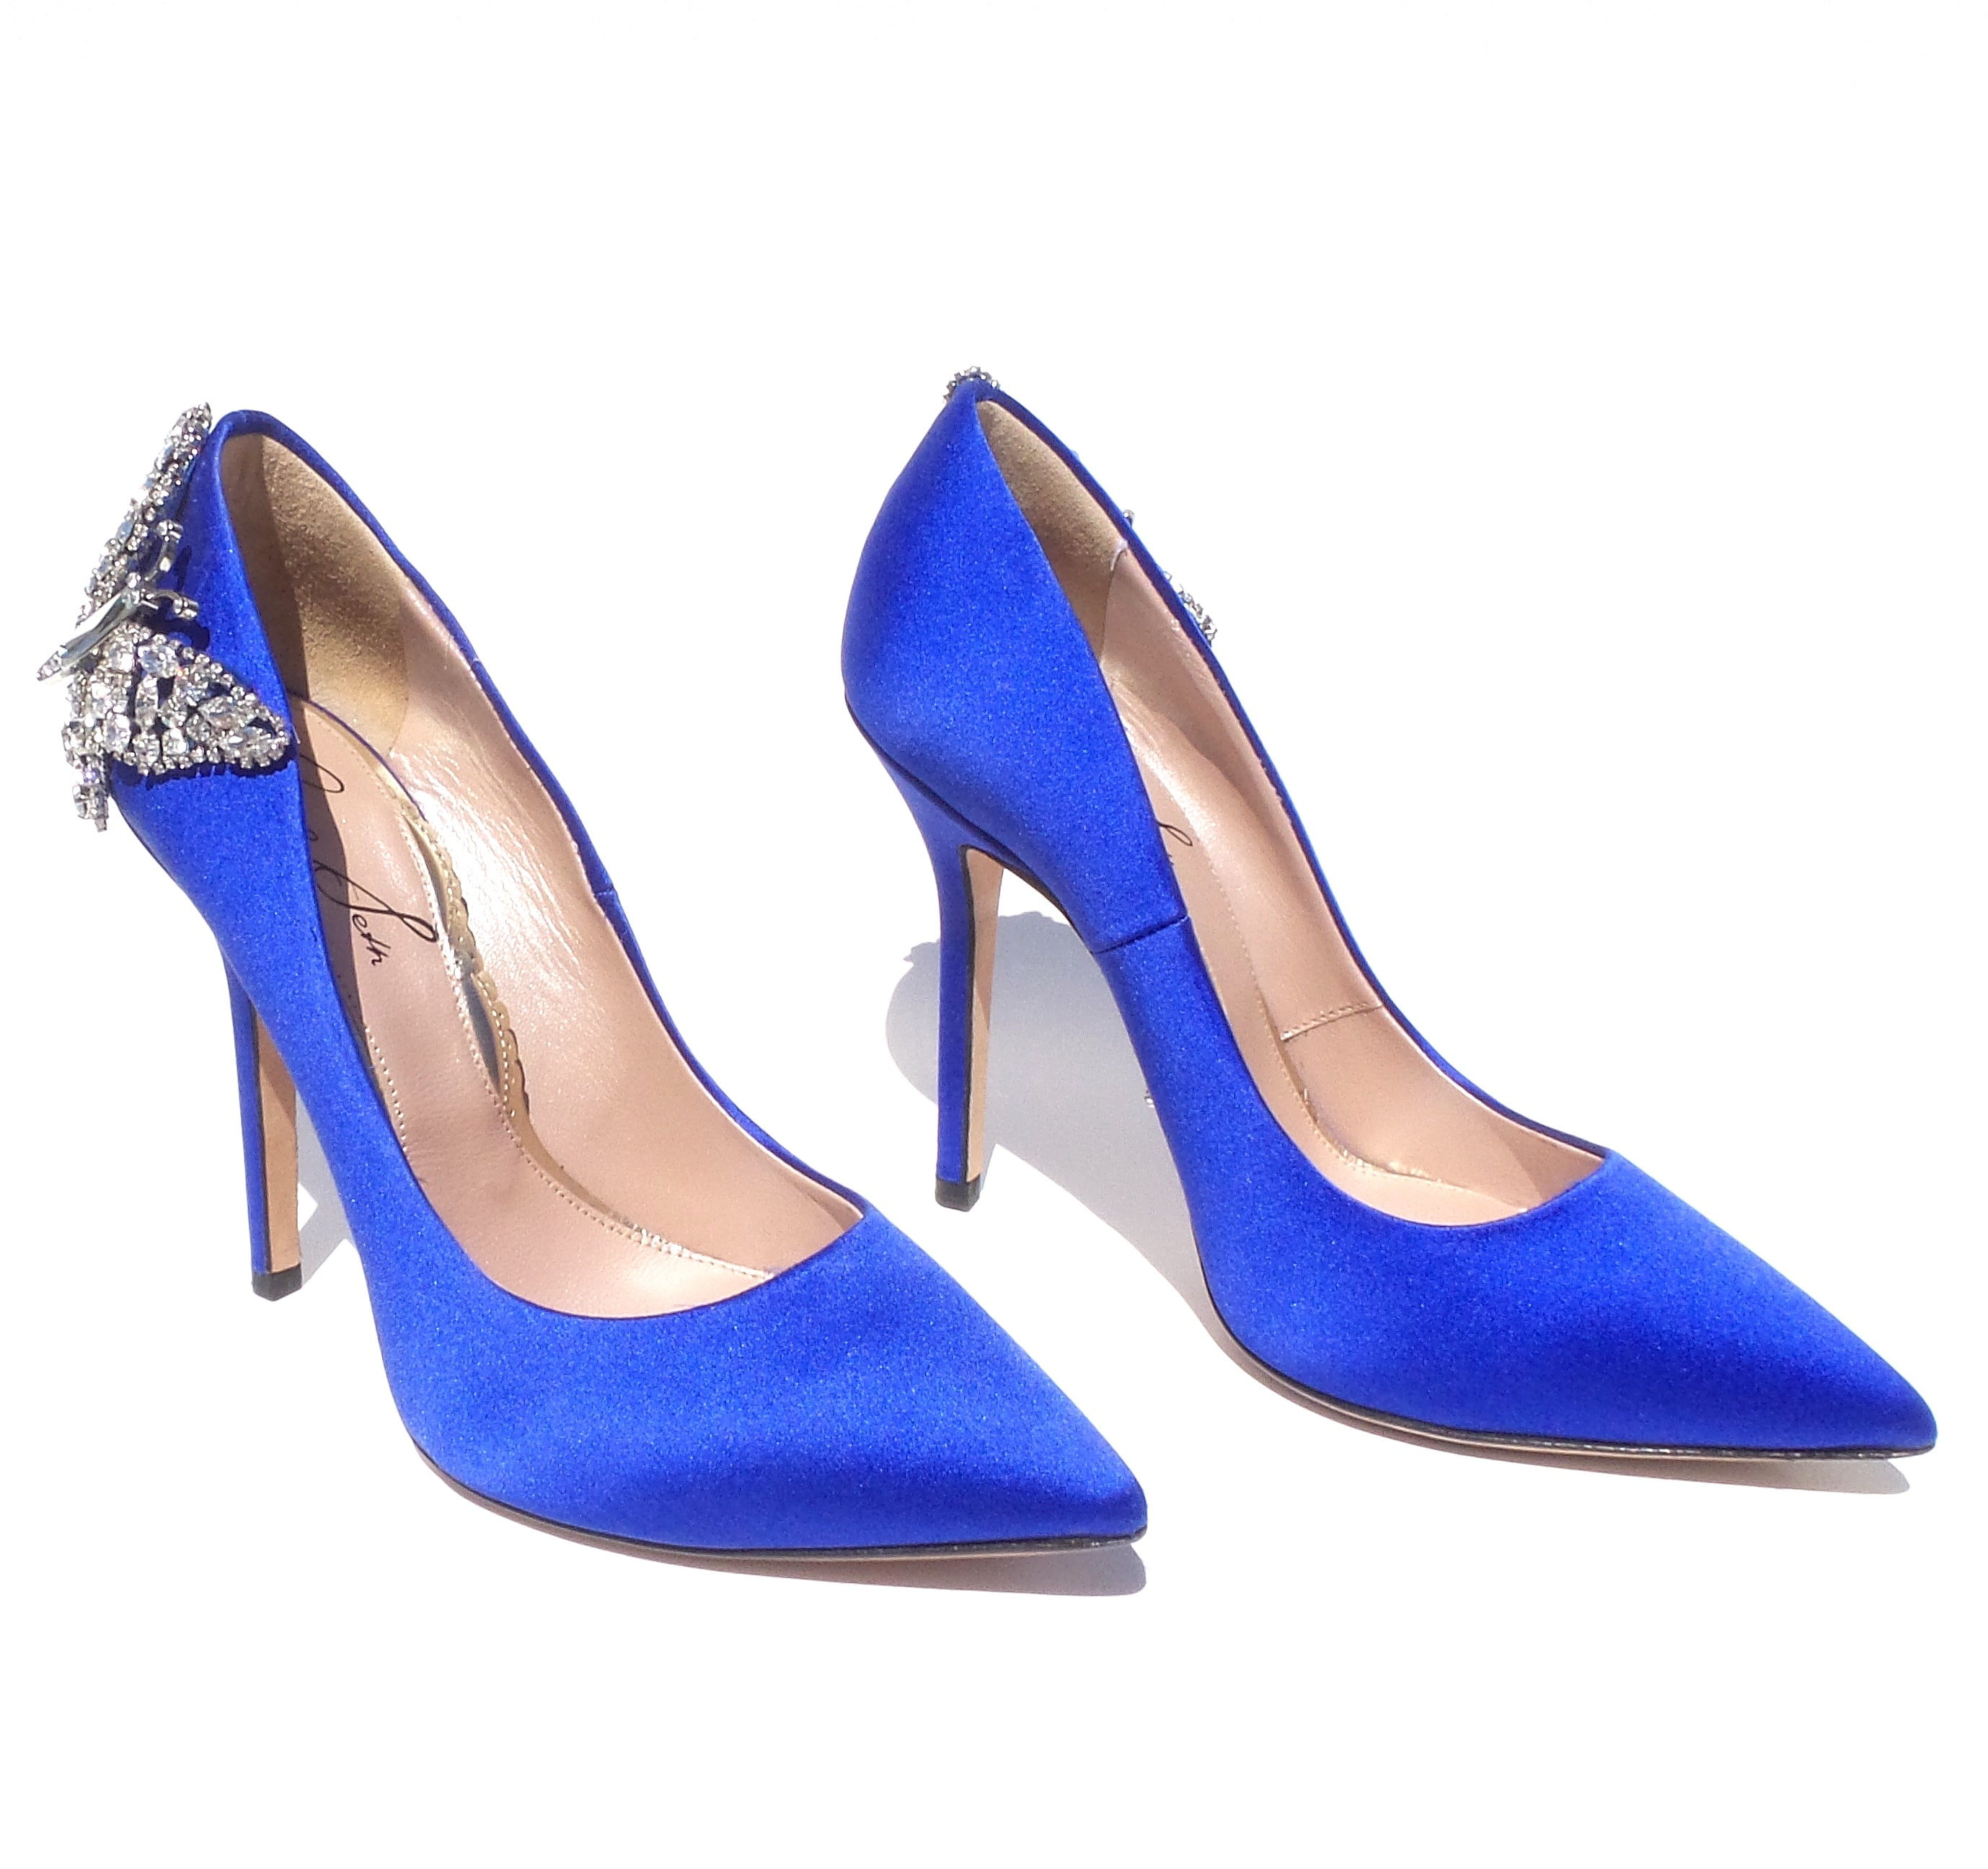 ARUNA SETH Pointy Farfalla Blue Satin Crystal Butterfly Heels Bridal Pumps 36 EC